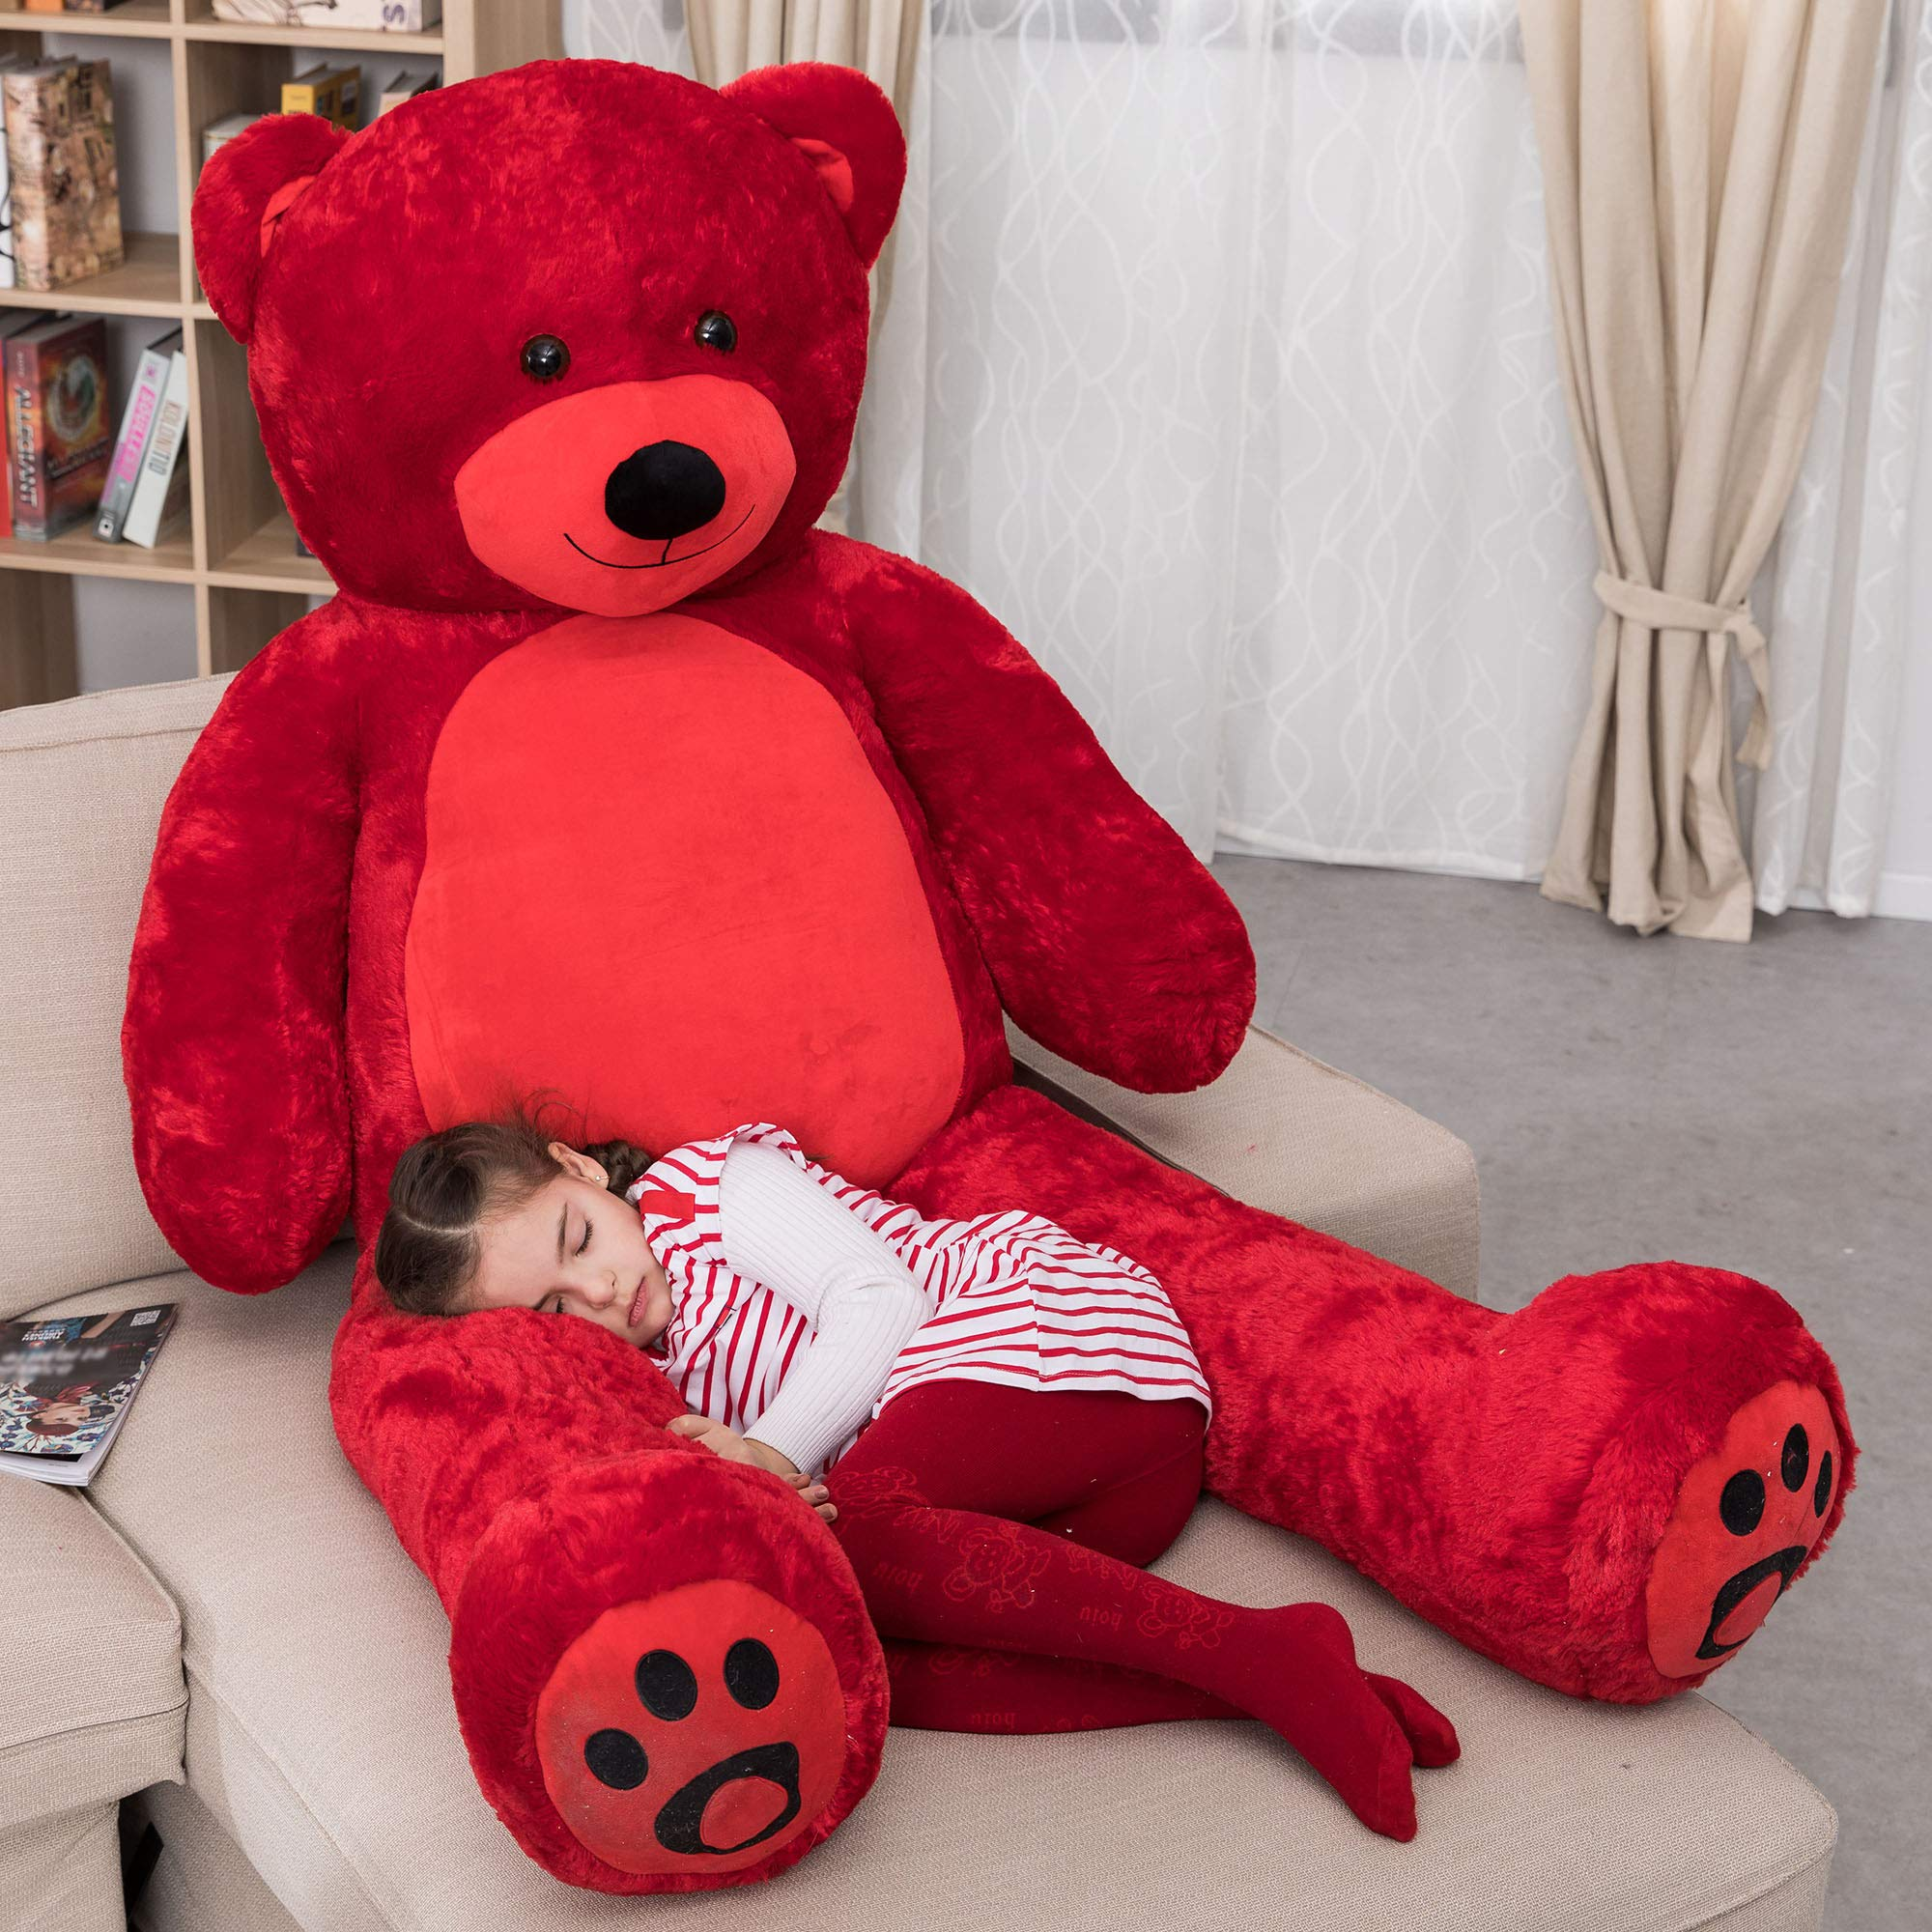 WOWMAX 6 Foot Giant Huge Life Size Teddy Bear Daney Cuddly Stuffed Plush Animals Teddy Bear Toy Doll for Birthday Christmas Red 72 Inches by WOWMAX